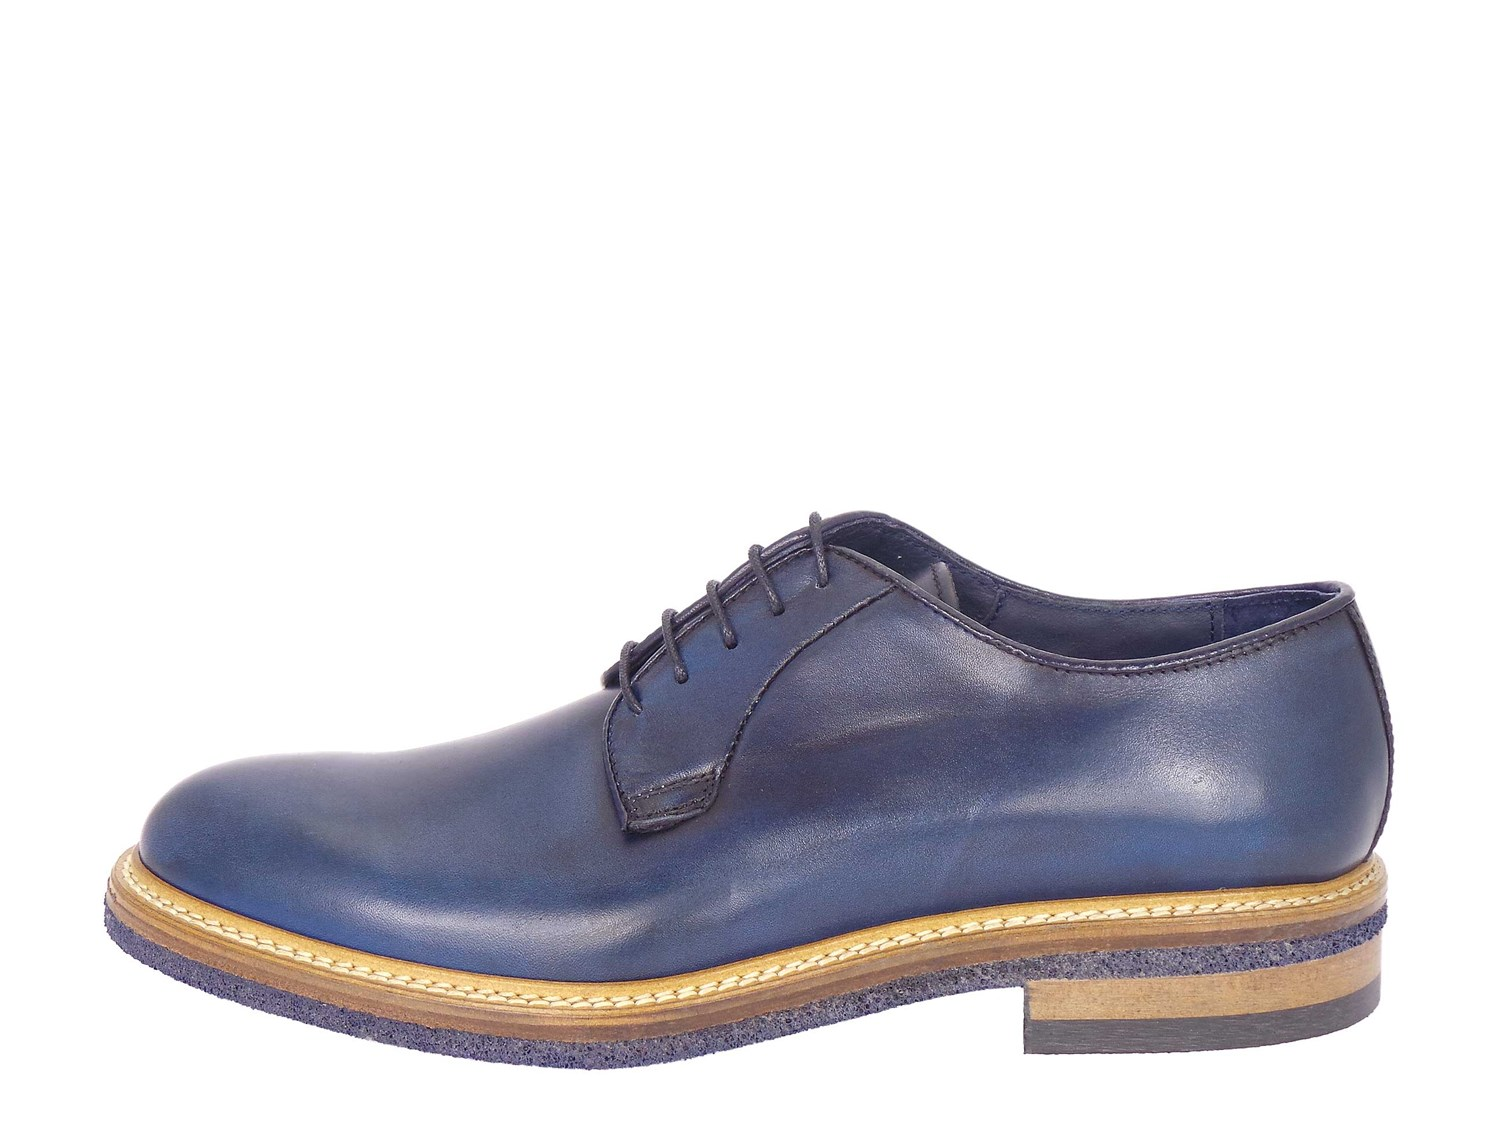 J.b.willis 850-16 Blue Shoes Man Francesina